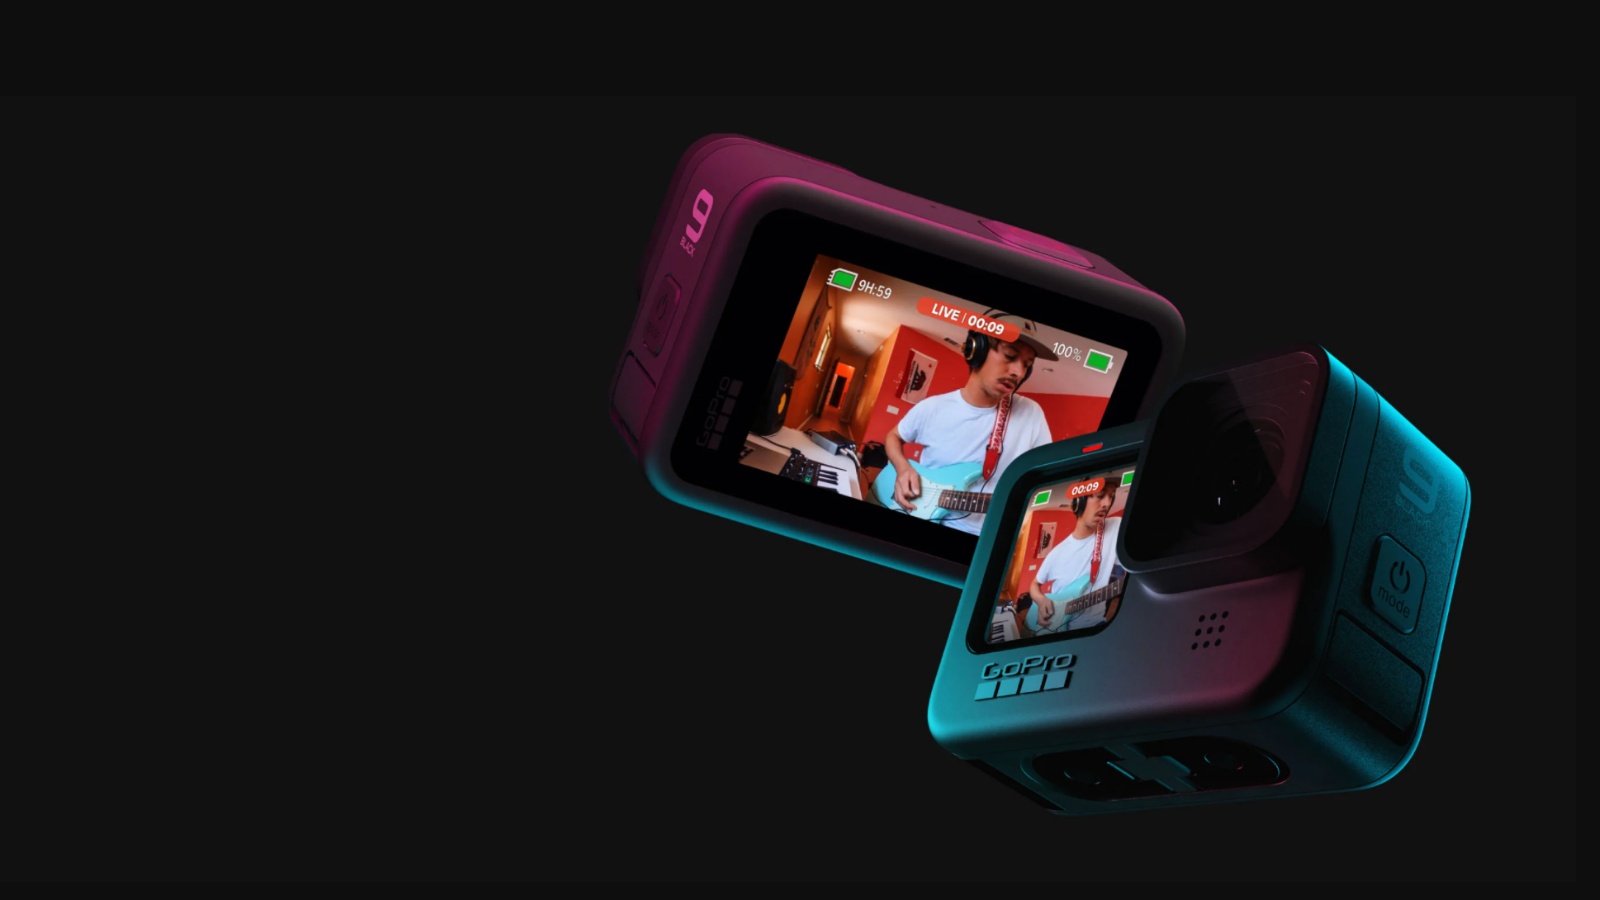 multiple different shots of the GoPro HERO9 camera on a black background